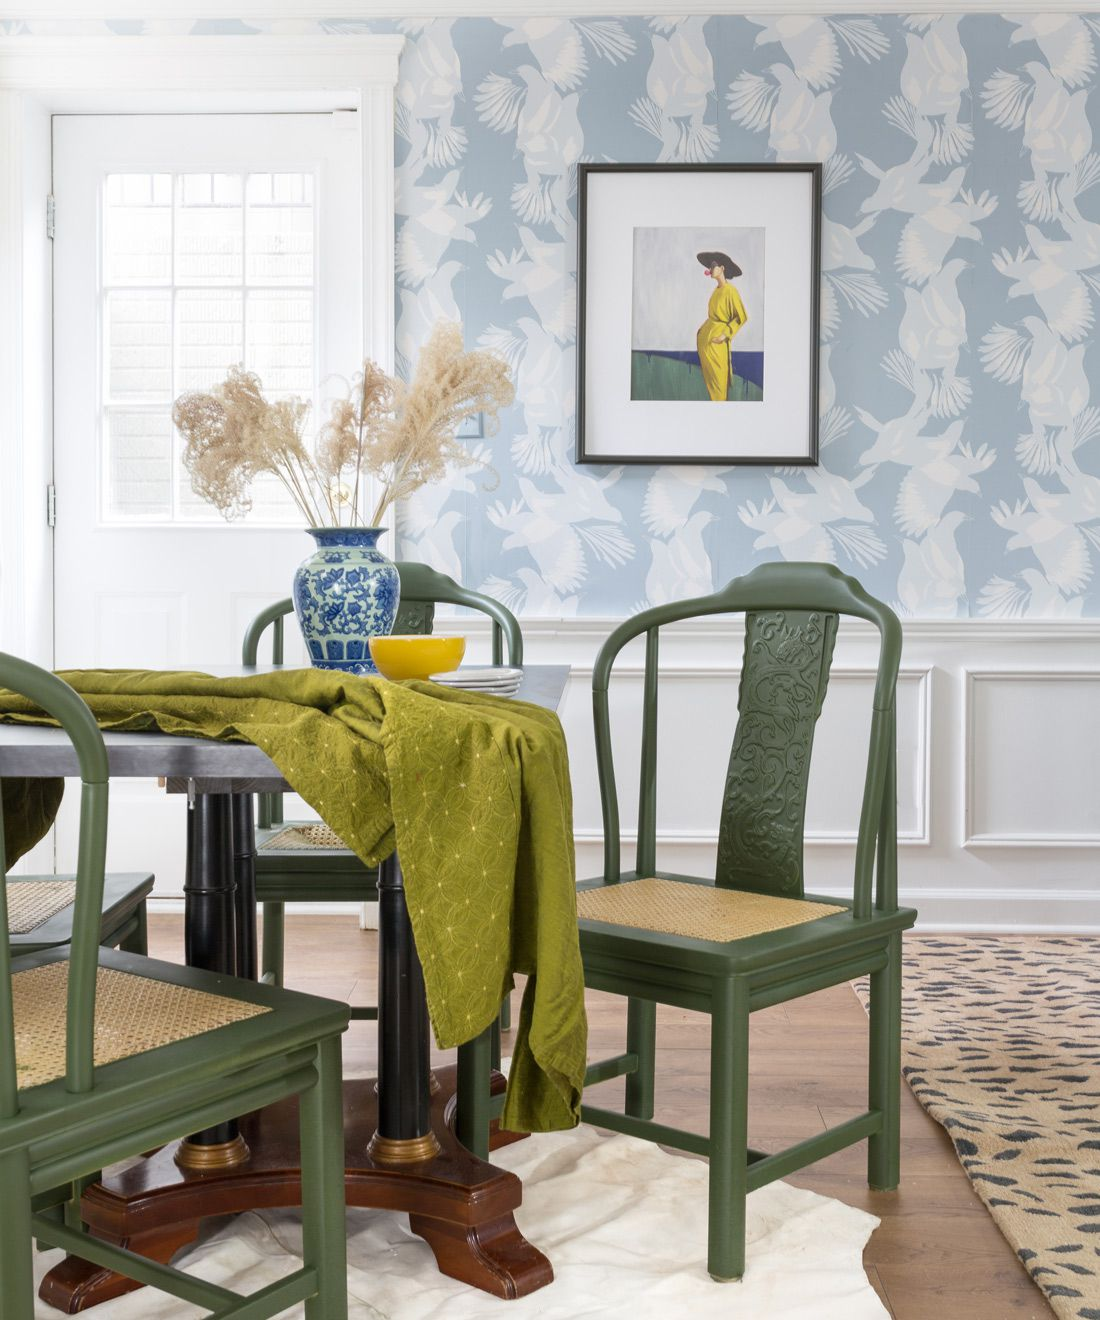 Magpie Wallpaper • Australia Collection by Kingdom Home • Blue Wallpaper • Bird Wallpaper • Kingdom Home • Photo by Jewel Marlowe